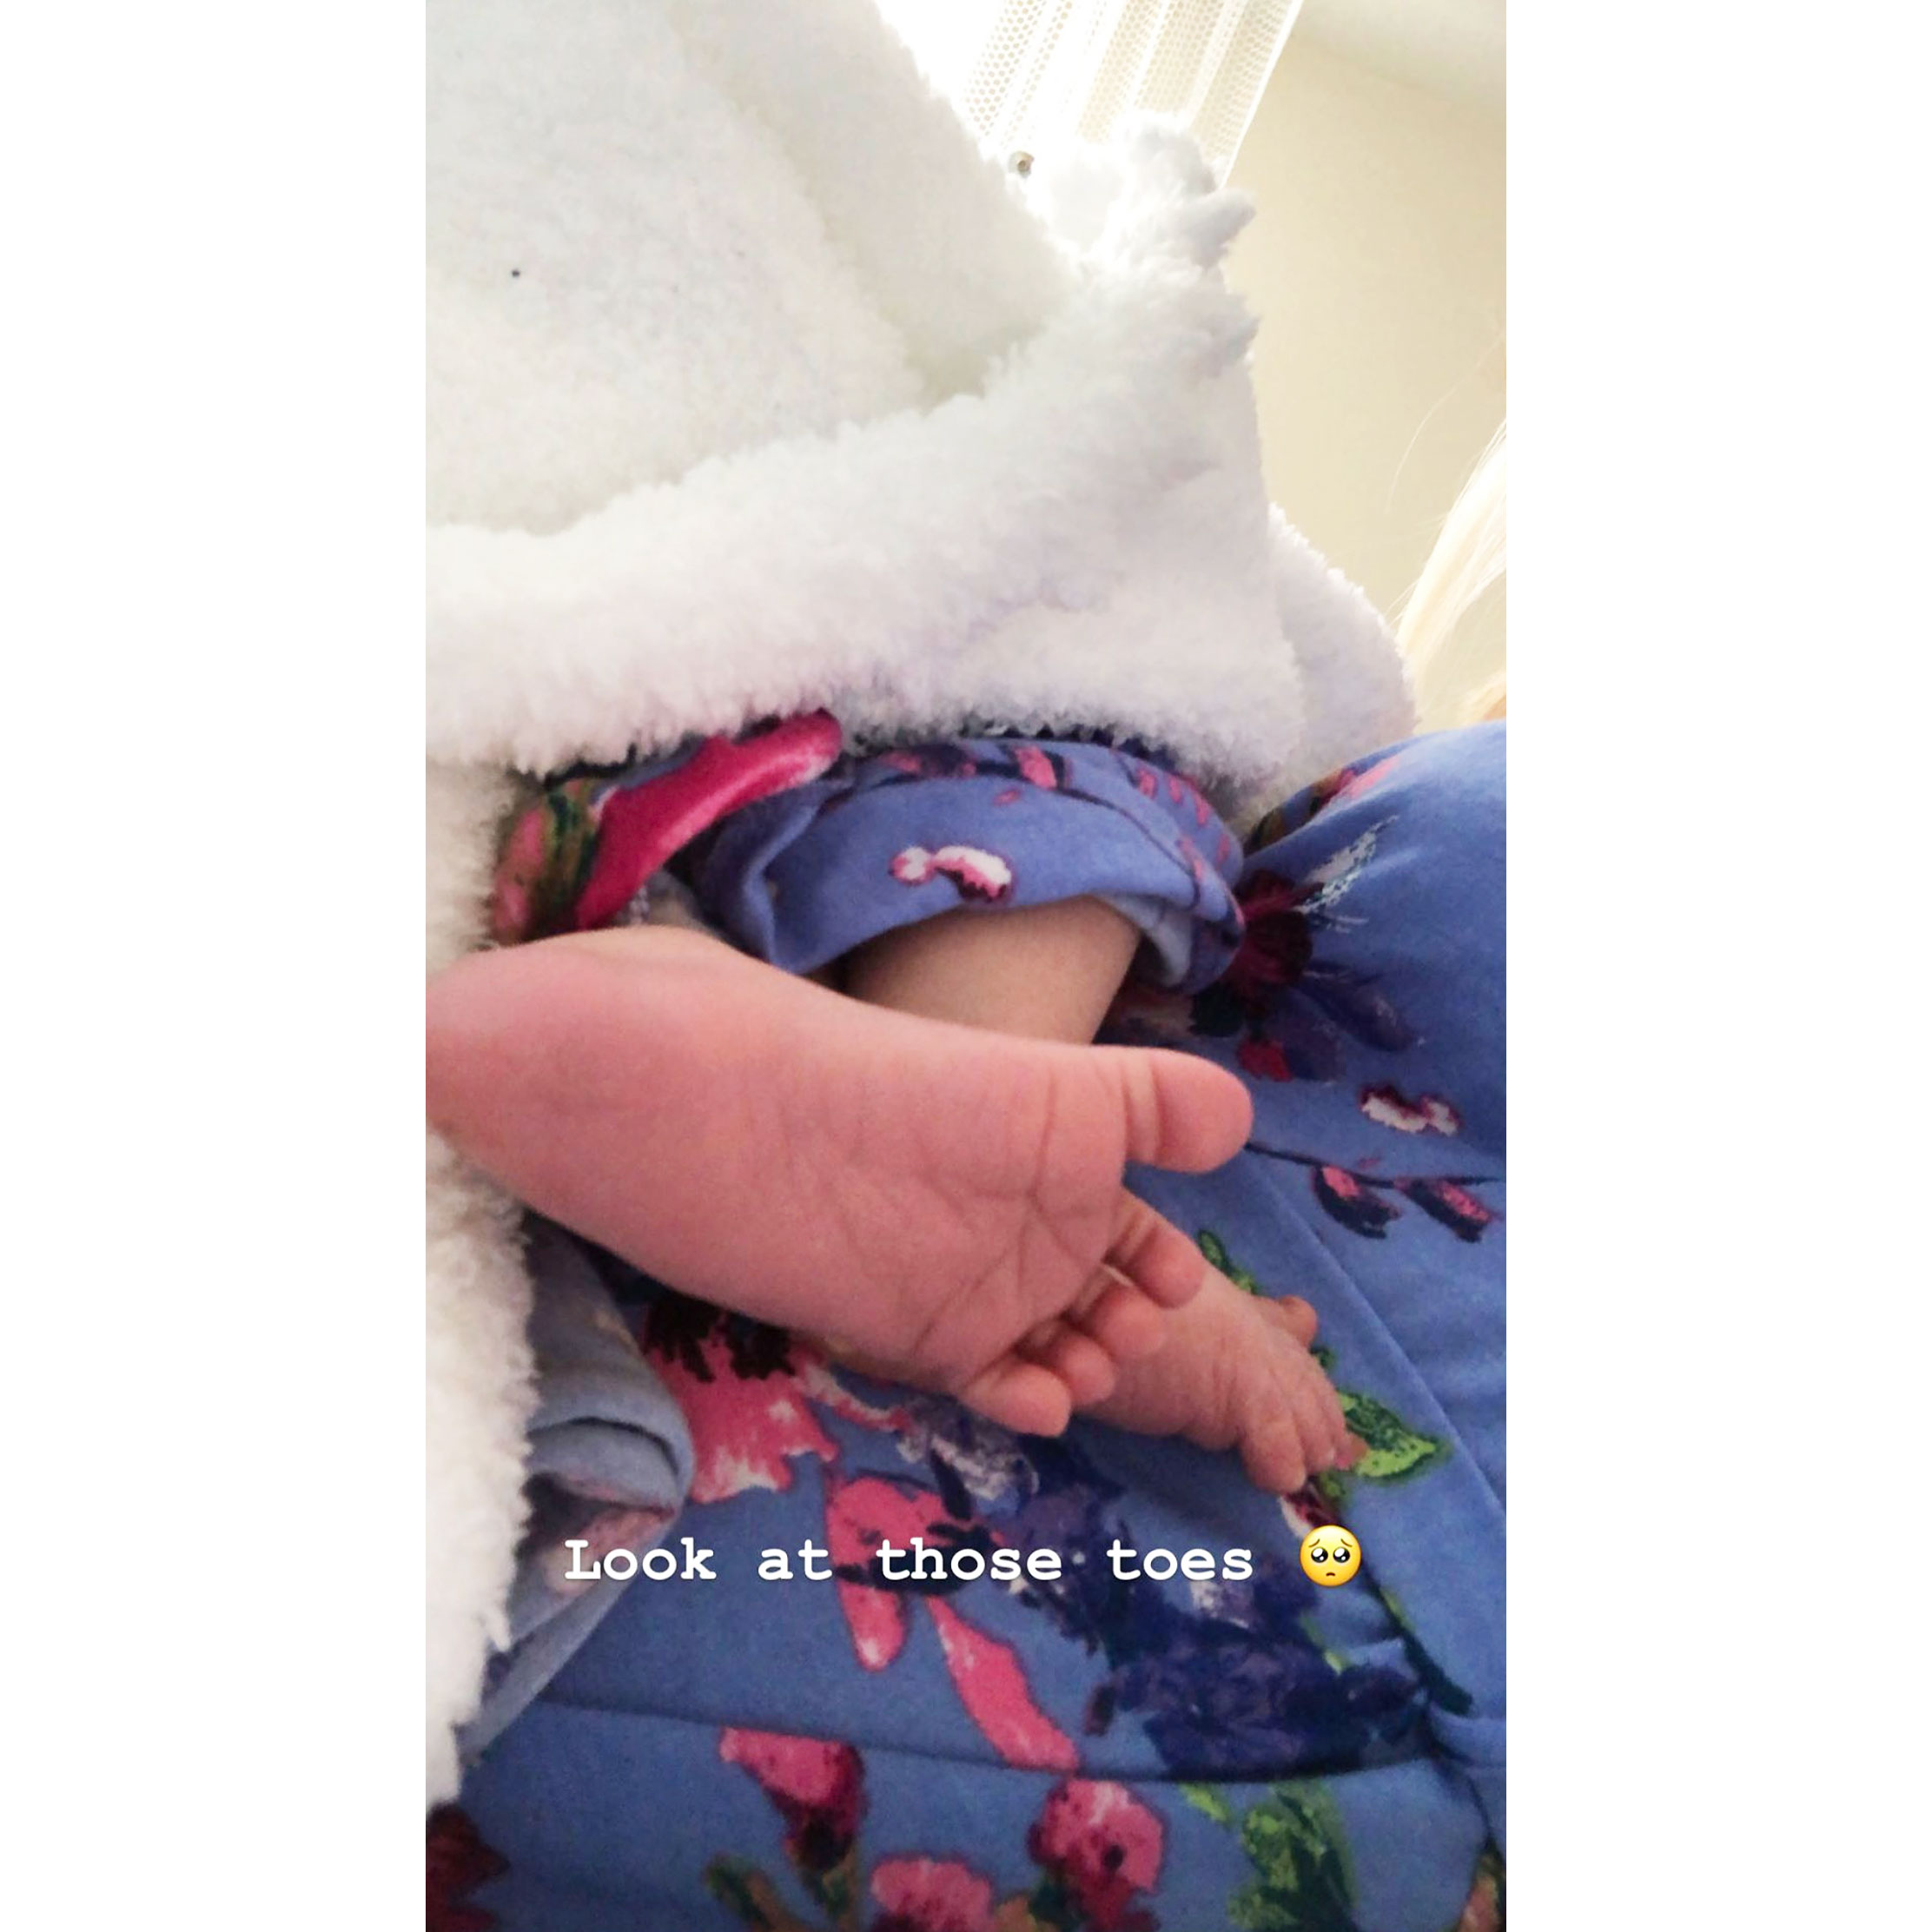 Taylor Selfridge Gives First Glimpse of Her and Cory Wharton's Newborn Daughter